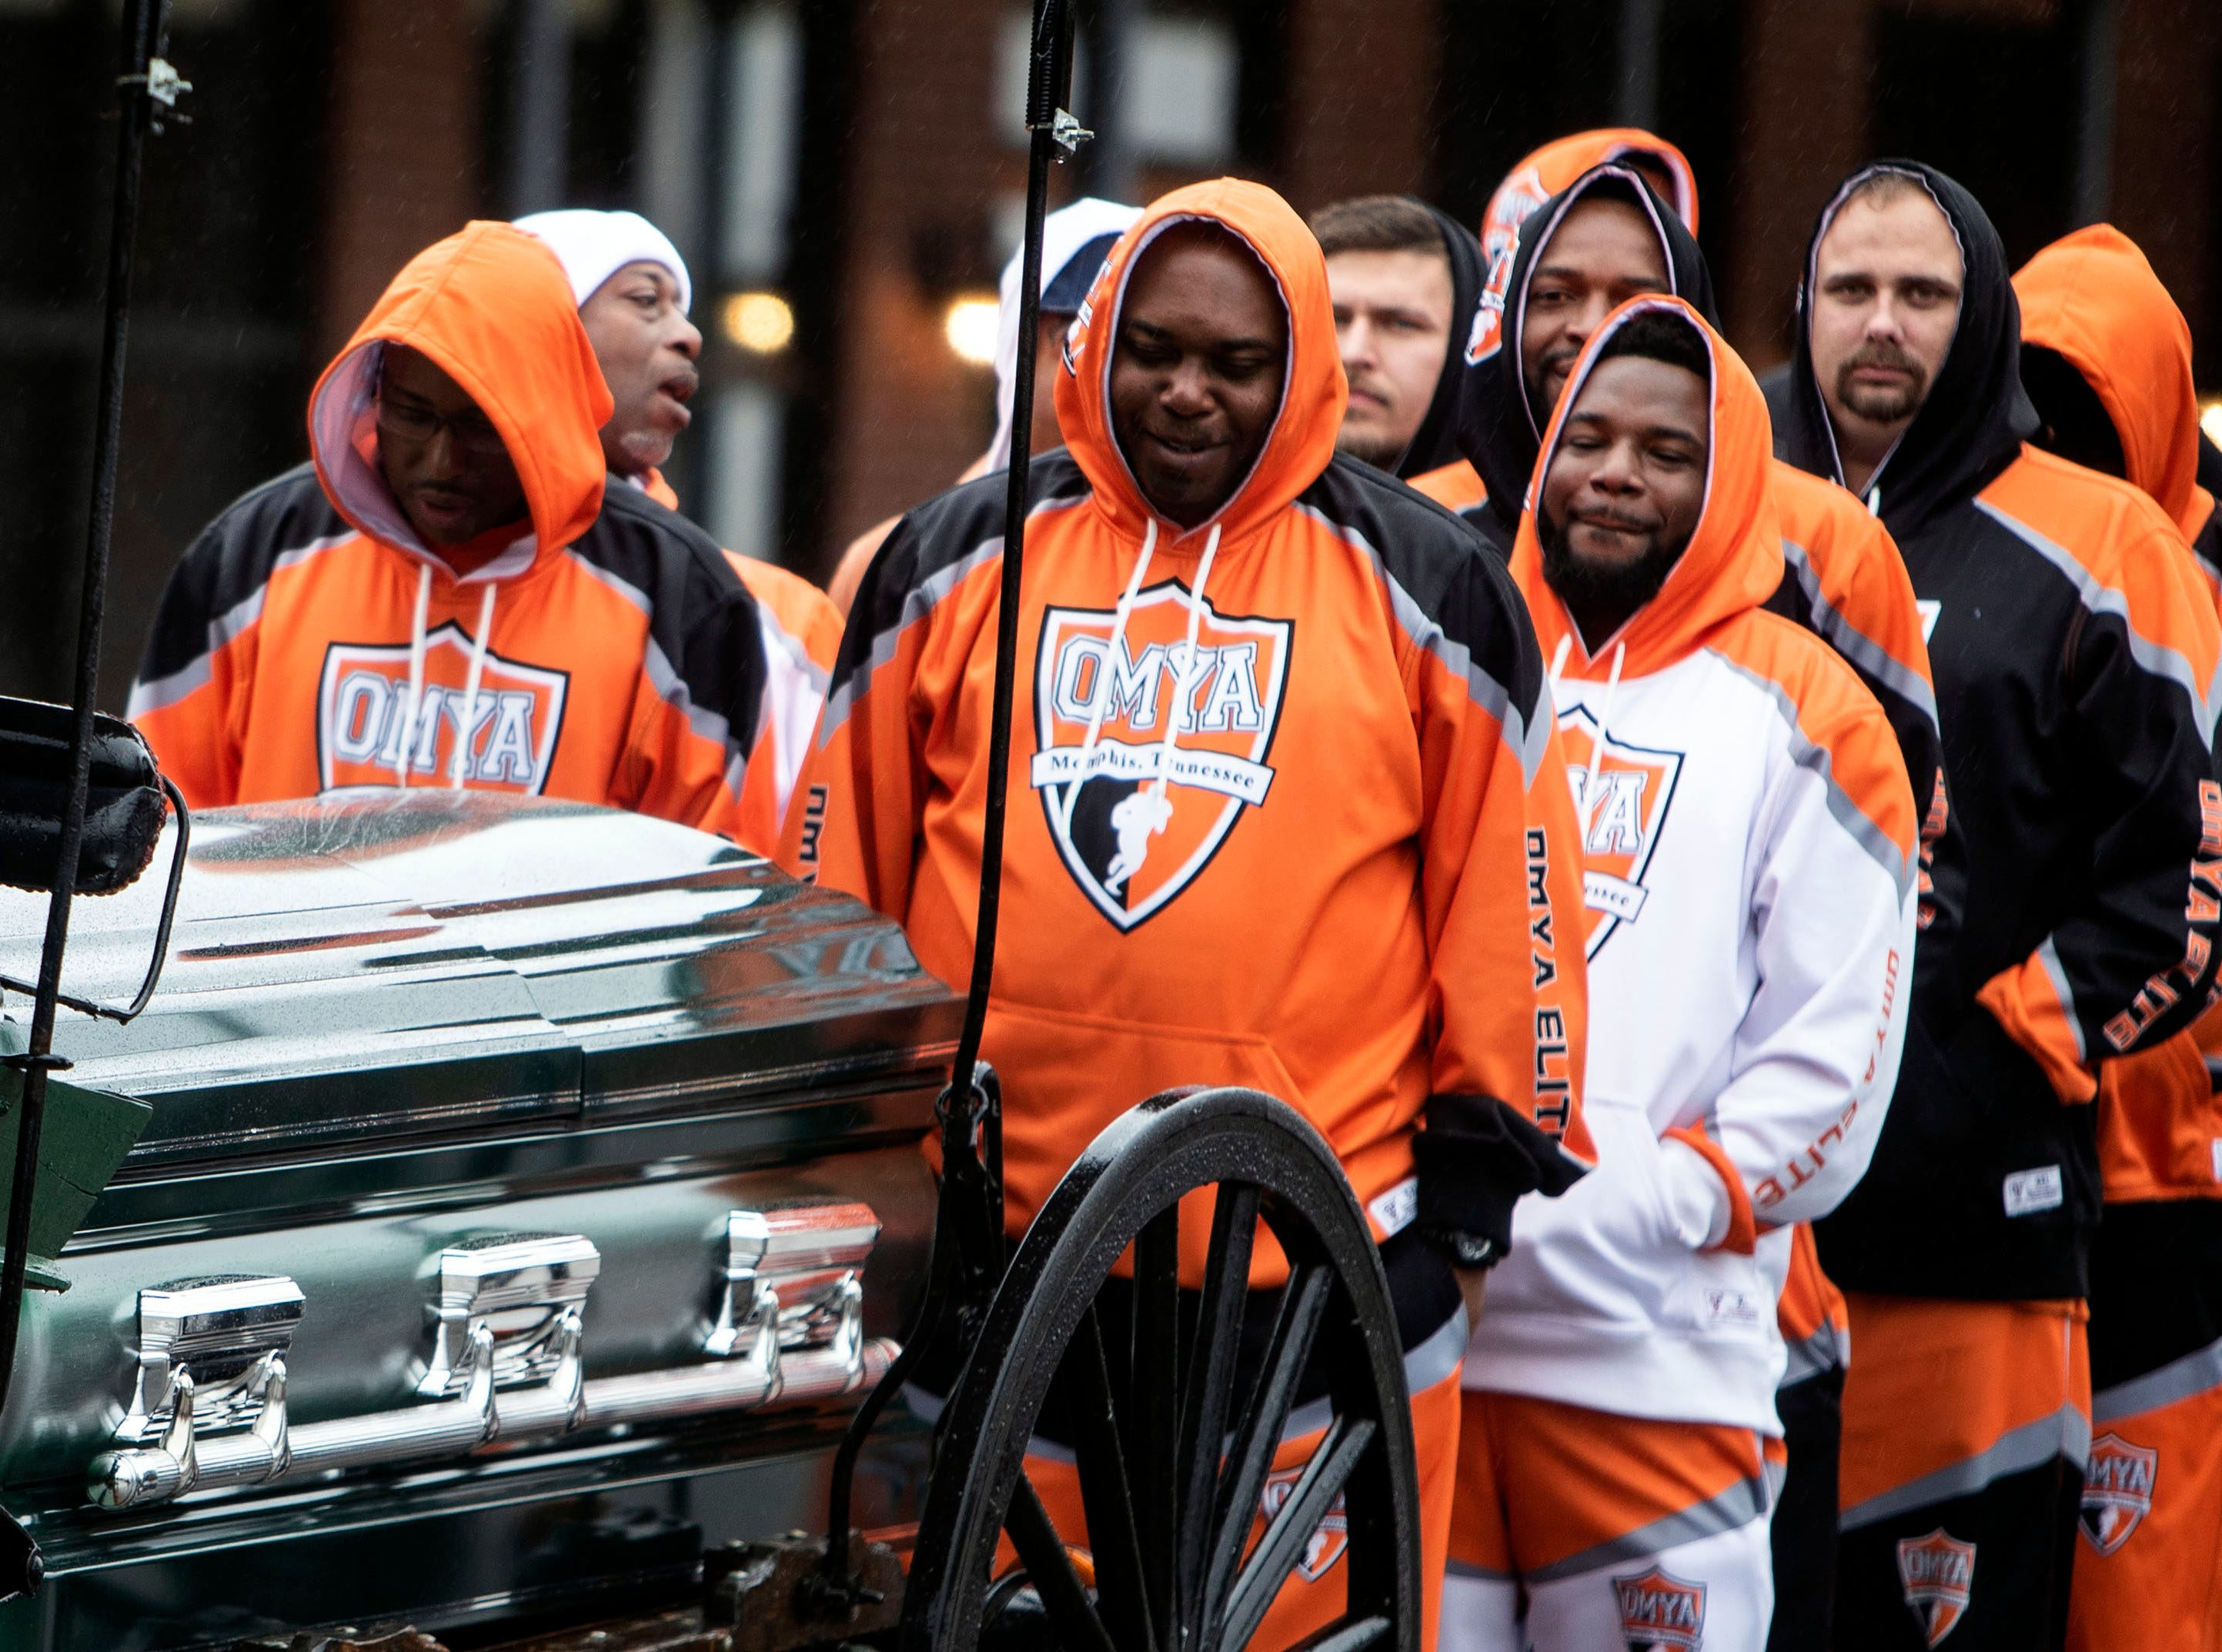 Orange Mound Youth Association coaches place Kameren Johnson's casket on the back of a carriage during the funeral, Saturday, Dec. 15, 2018.